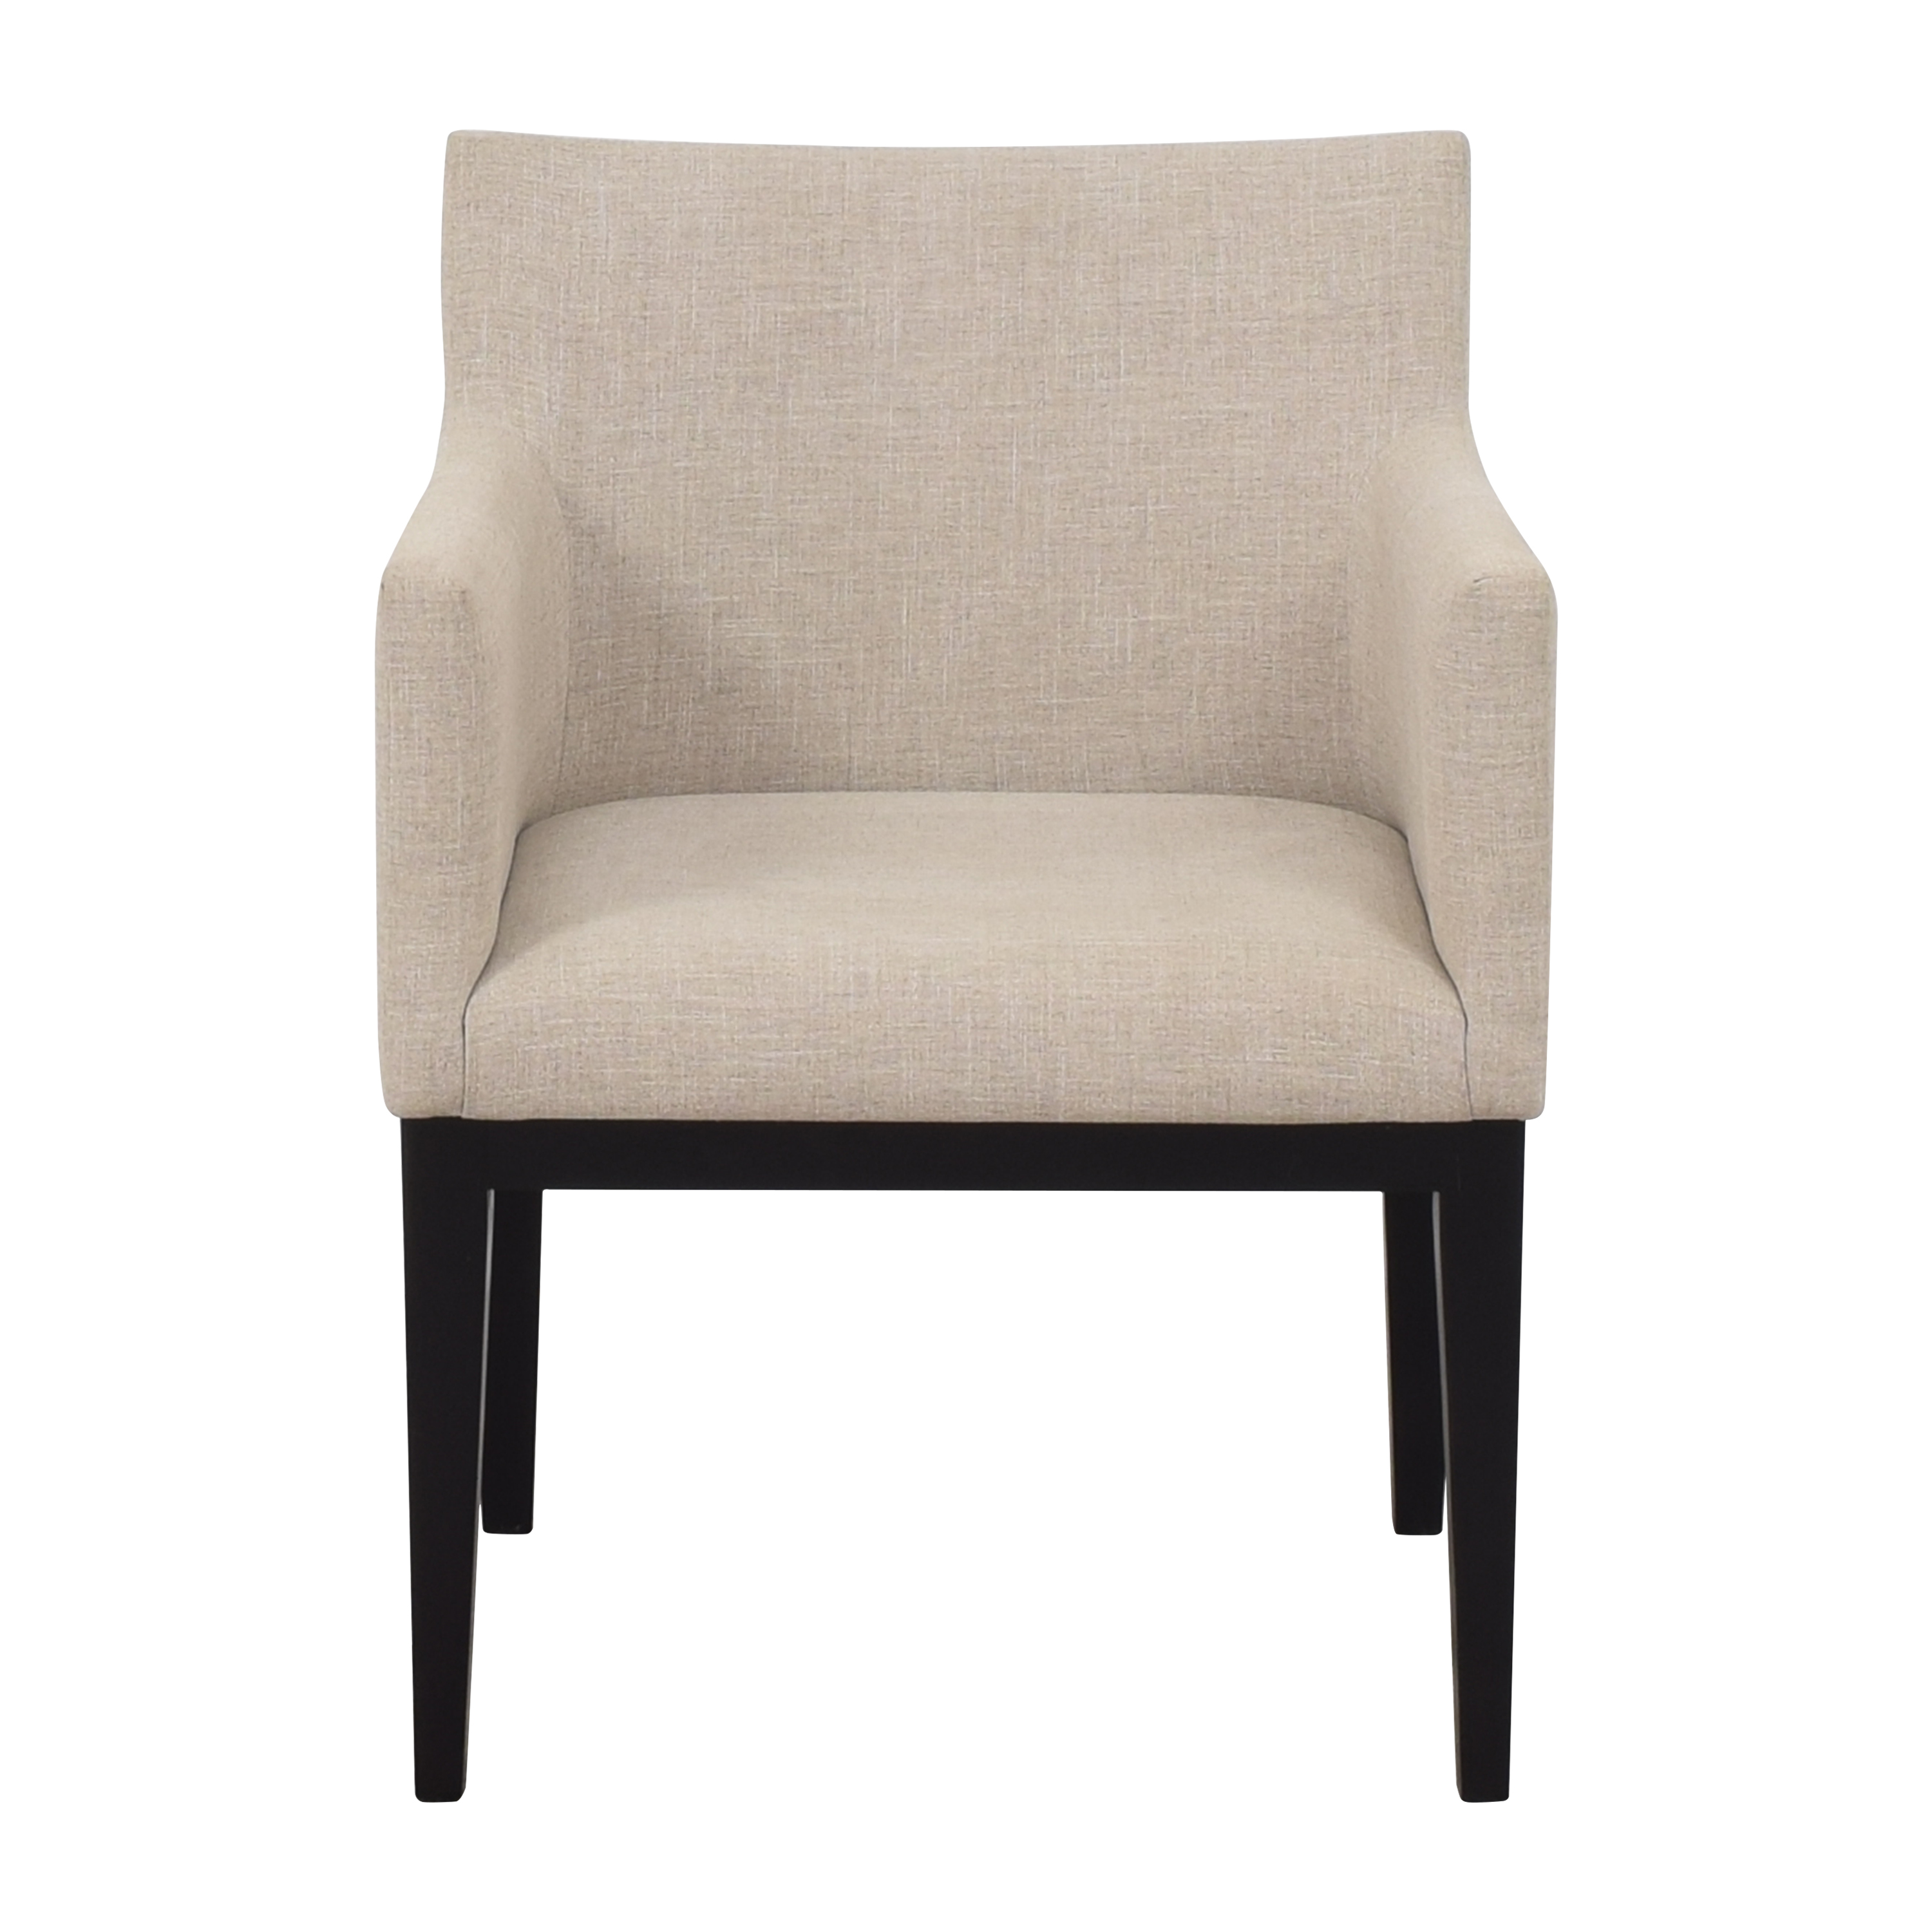 Lillian August Upholstered Dining Arm Chair / Dining Chairs